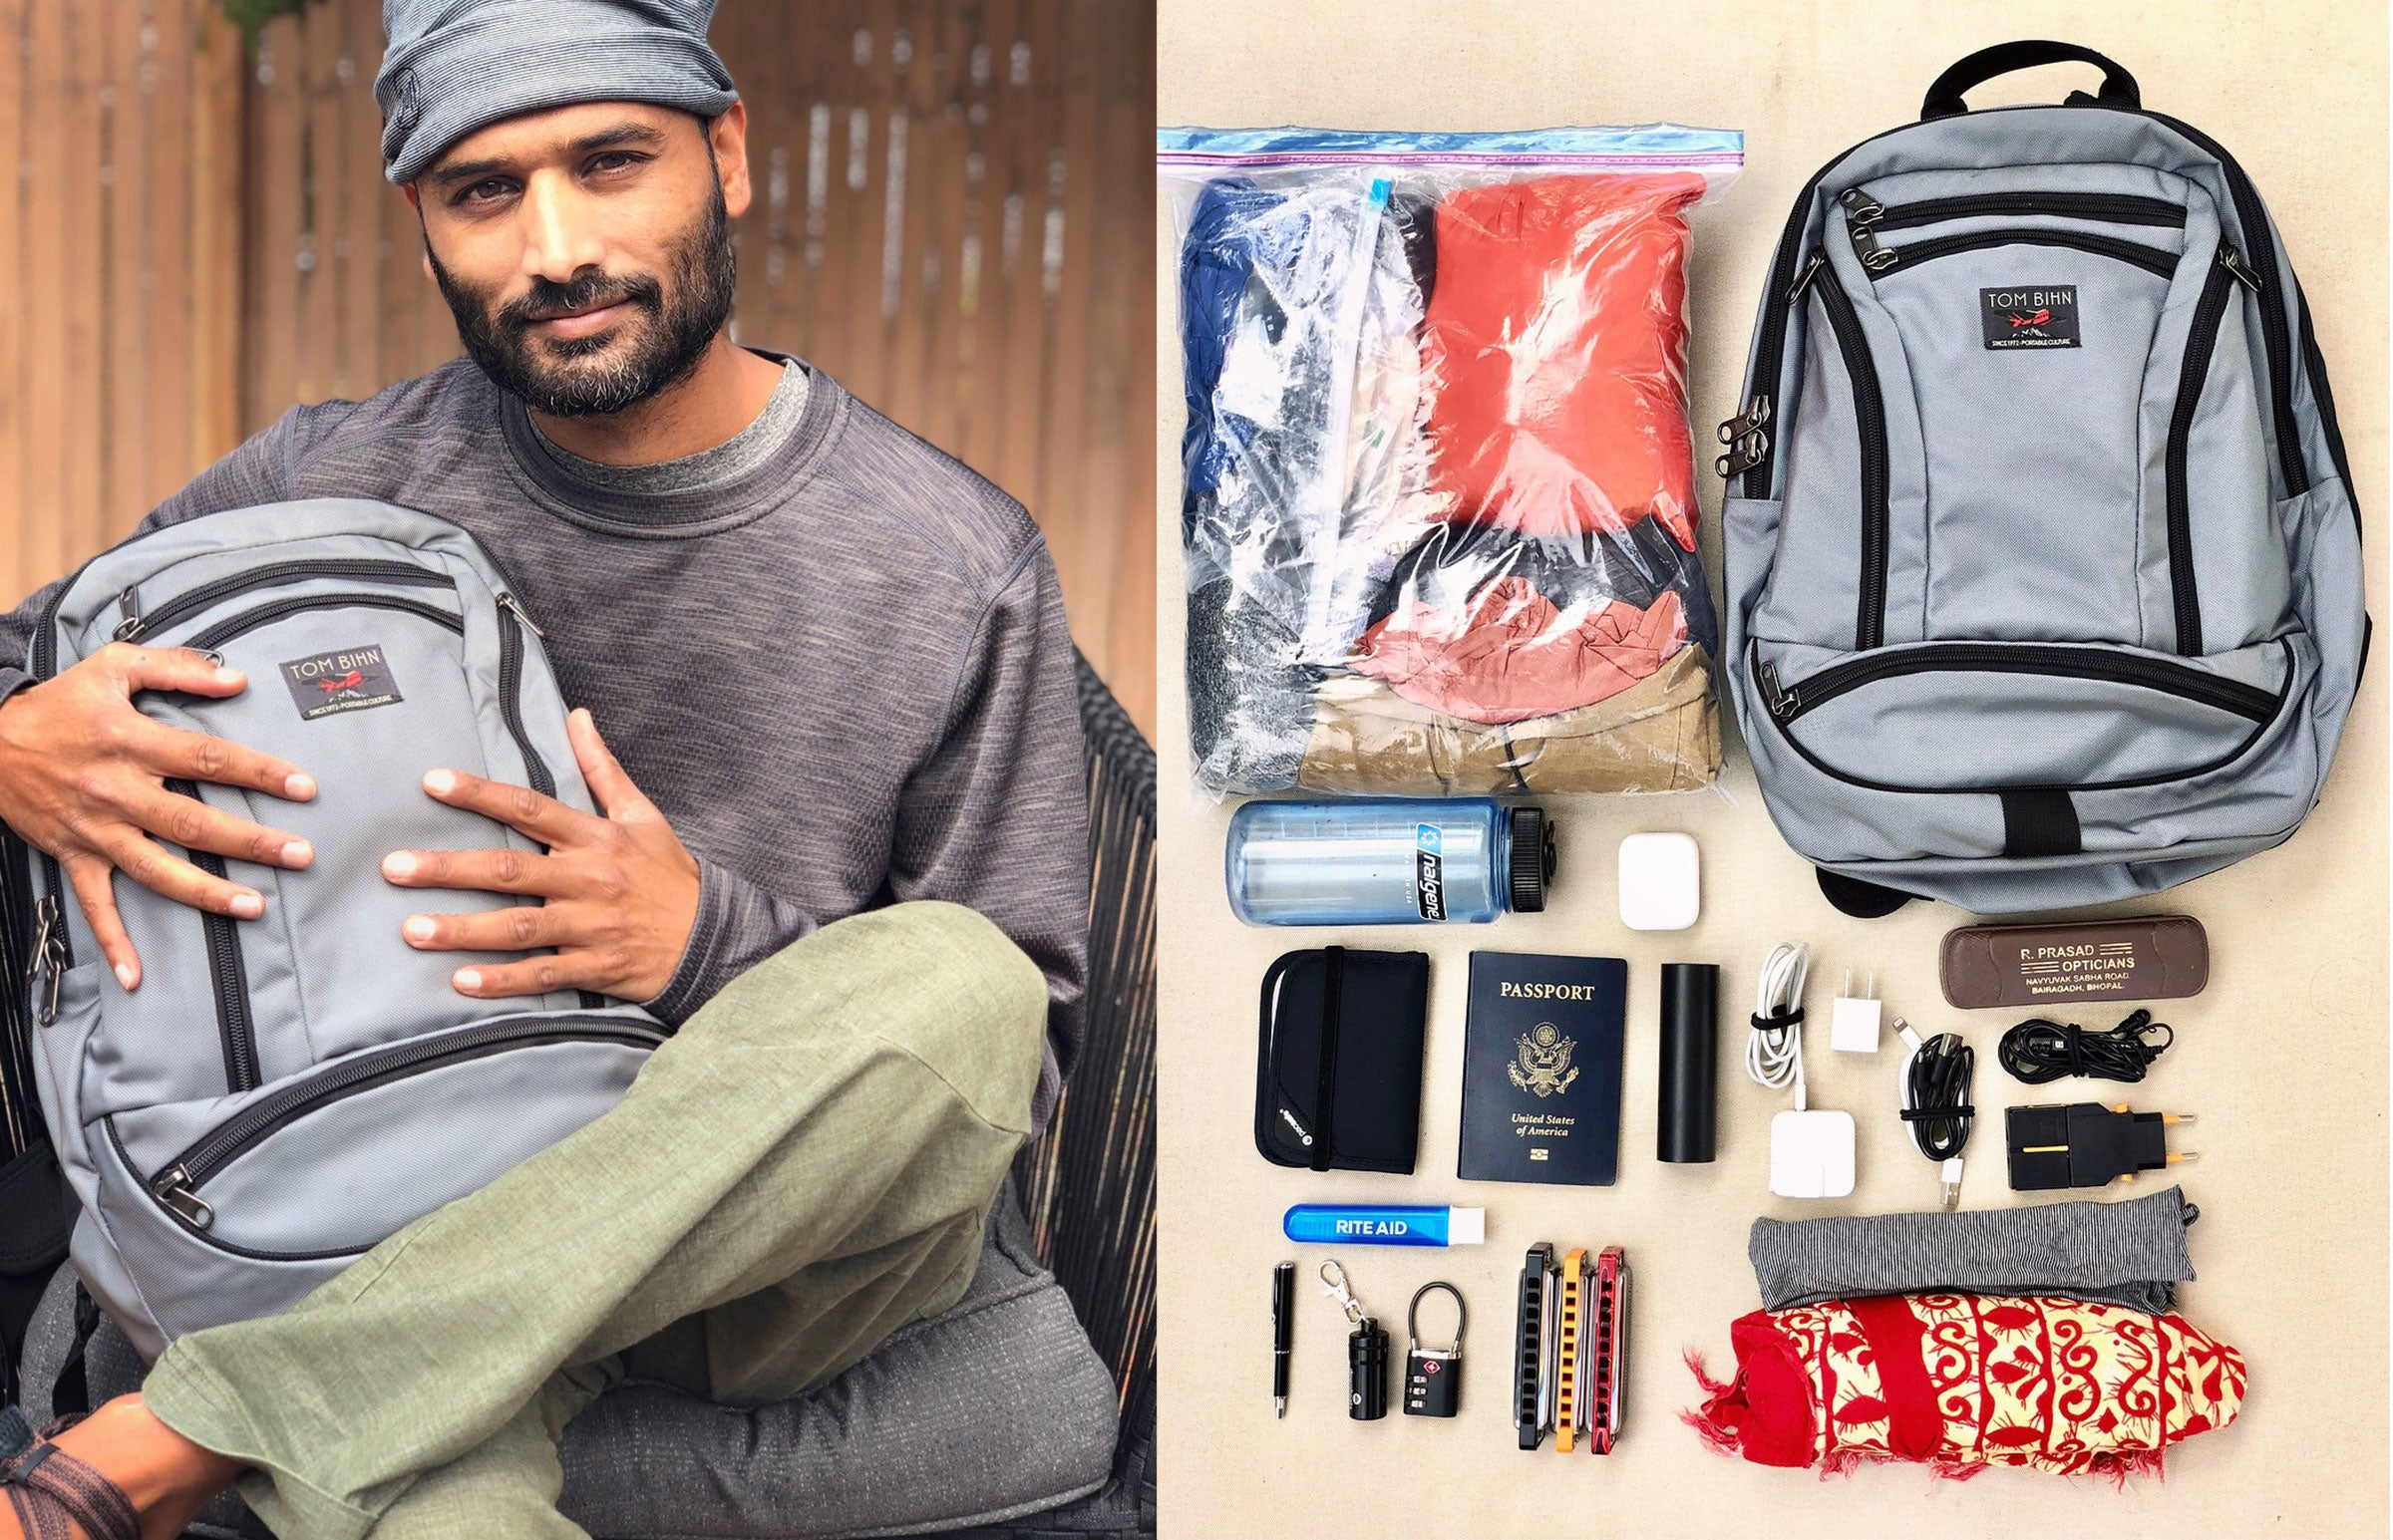 Extreme Minimalist Travel using the TOM BIHN Synapse 19 Backpack: An Interview with Rishi O